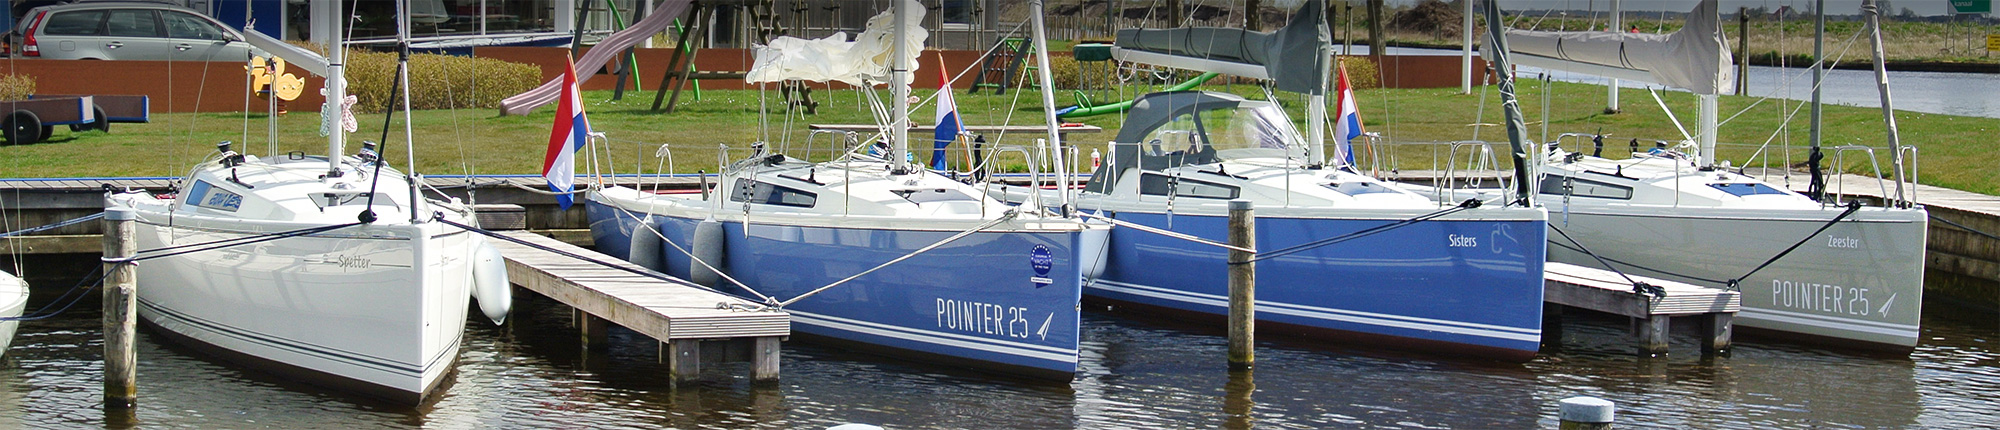 Contact opnemen met Pointer Yachts